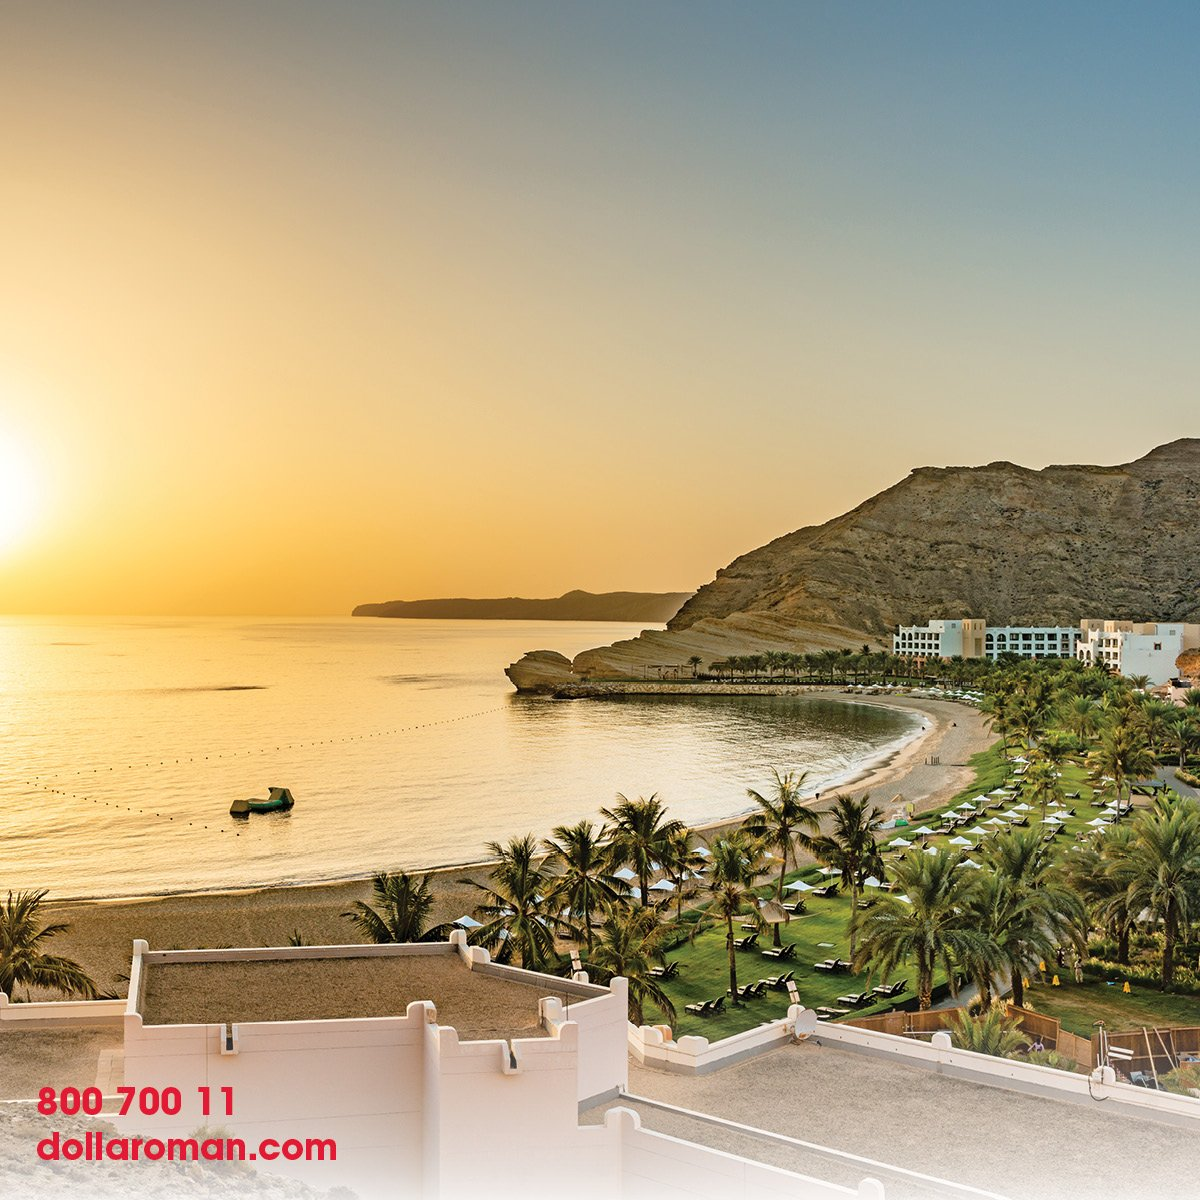 Witness a phenomenal sunrise at Barr al Jissah in Muscat, Oman. Rent a car, go on a long drive to explore the mesmerizing views of nature.#dollaroman #oman #muscat #salalah #dollarcarrental #carrental #rentacar #explore #travel #longdrive